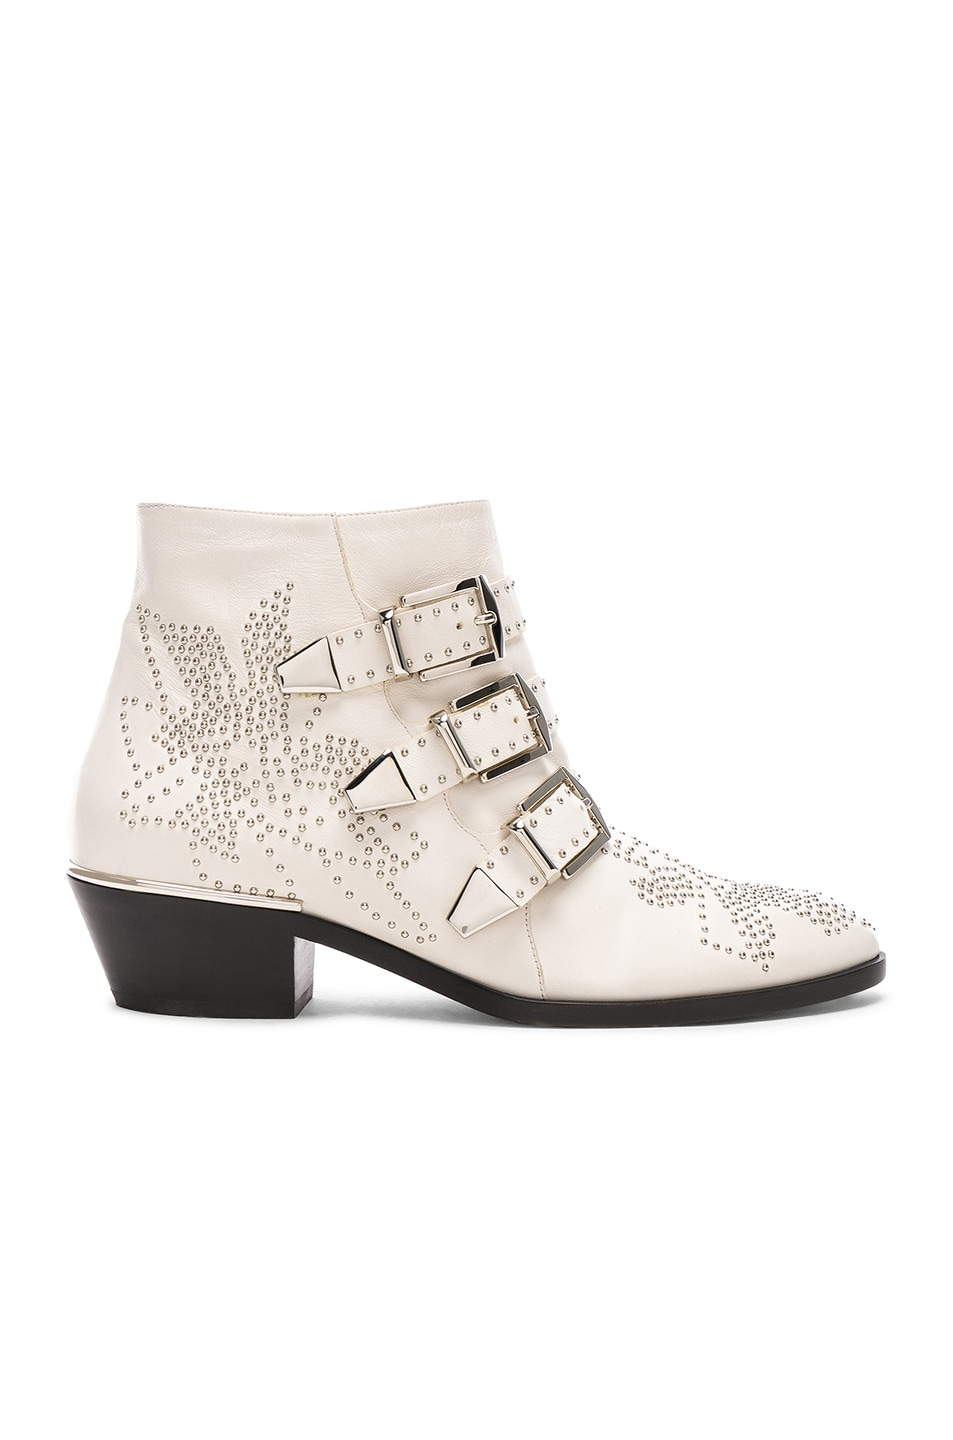 Image 1 of Chloe Susanna Leather Studded Ankle Boots in Cloudy White